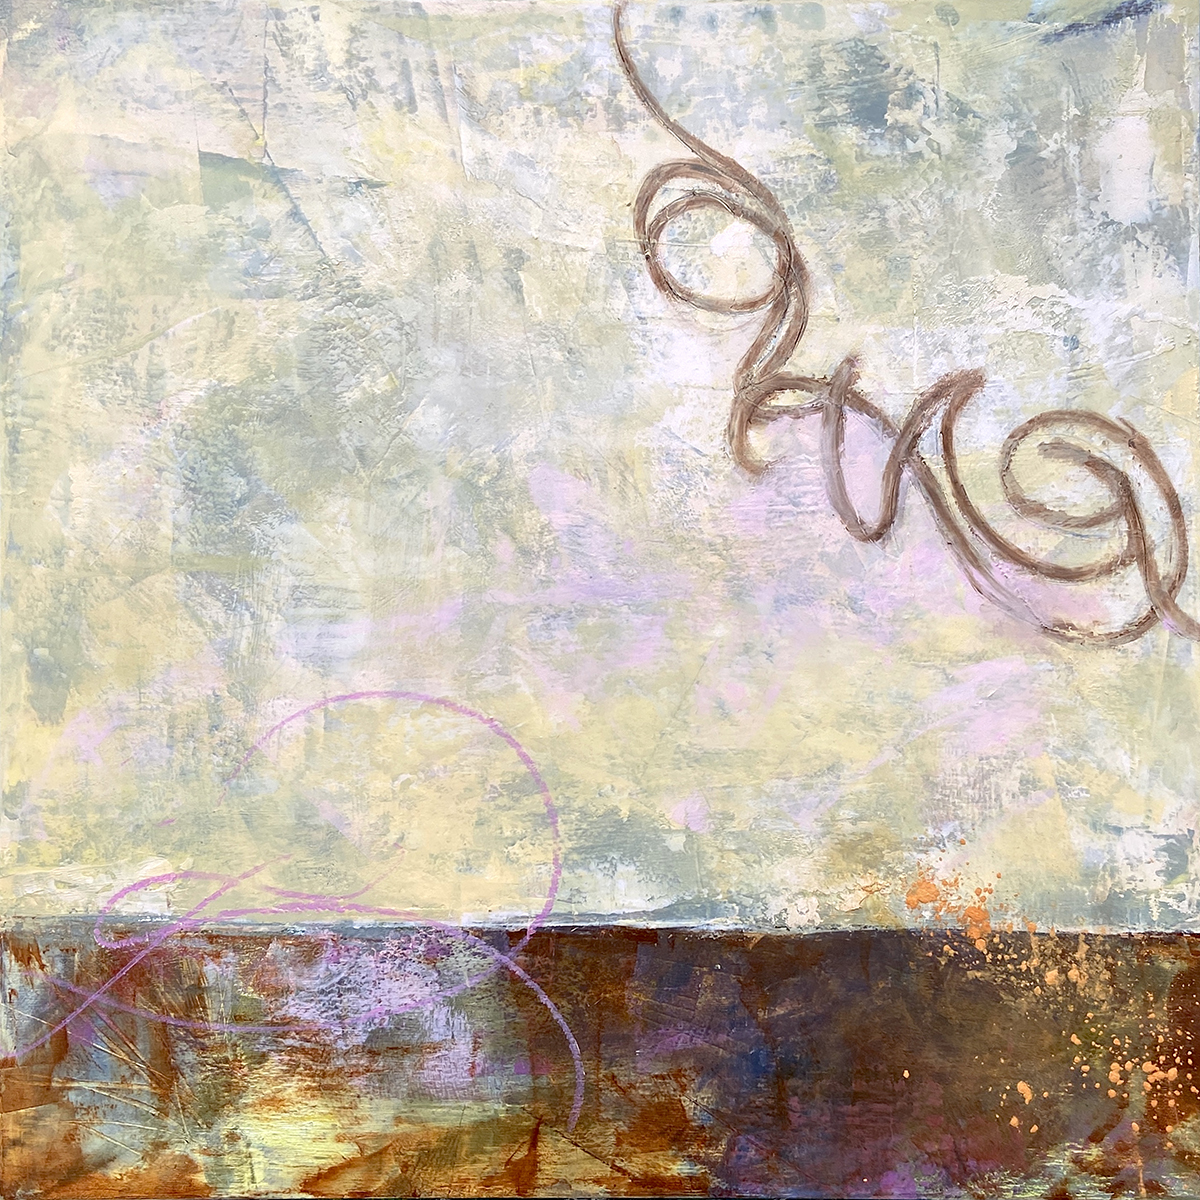 Entanglement, oil and cold wax painting by Elizabeth Shaw Neviaser.